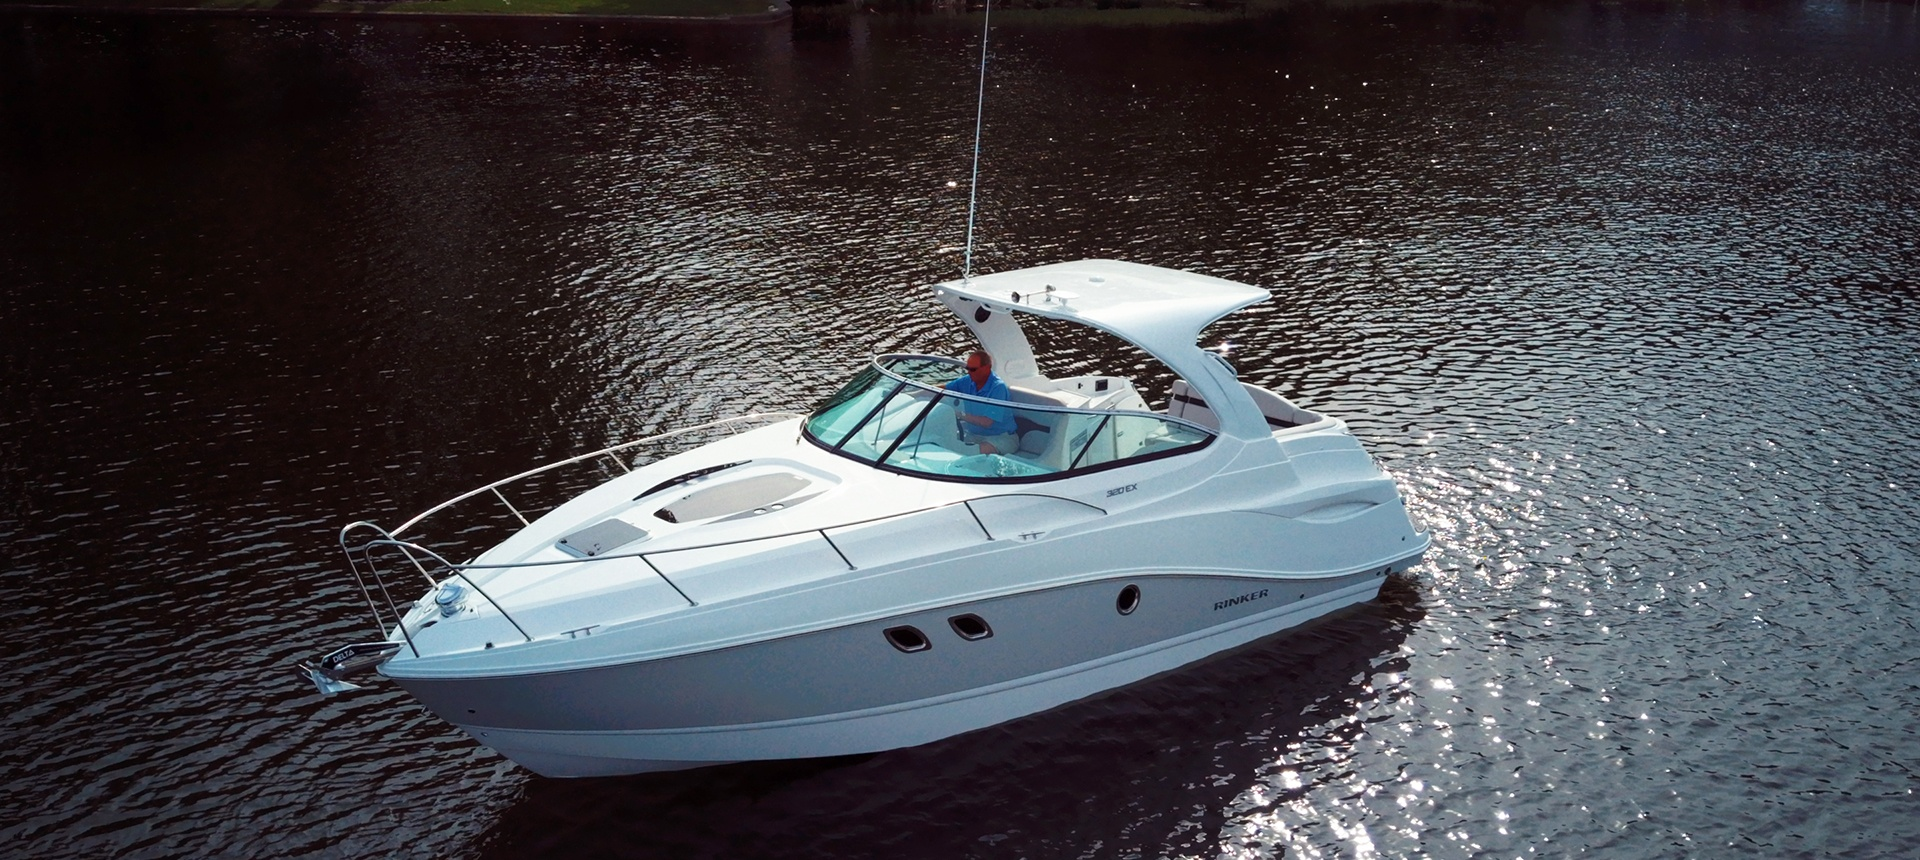 Pic of 320EX boat on the water